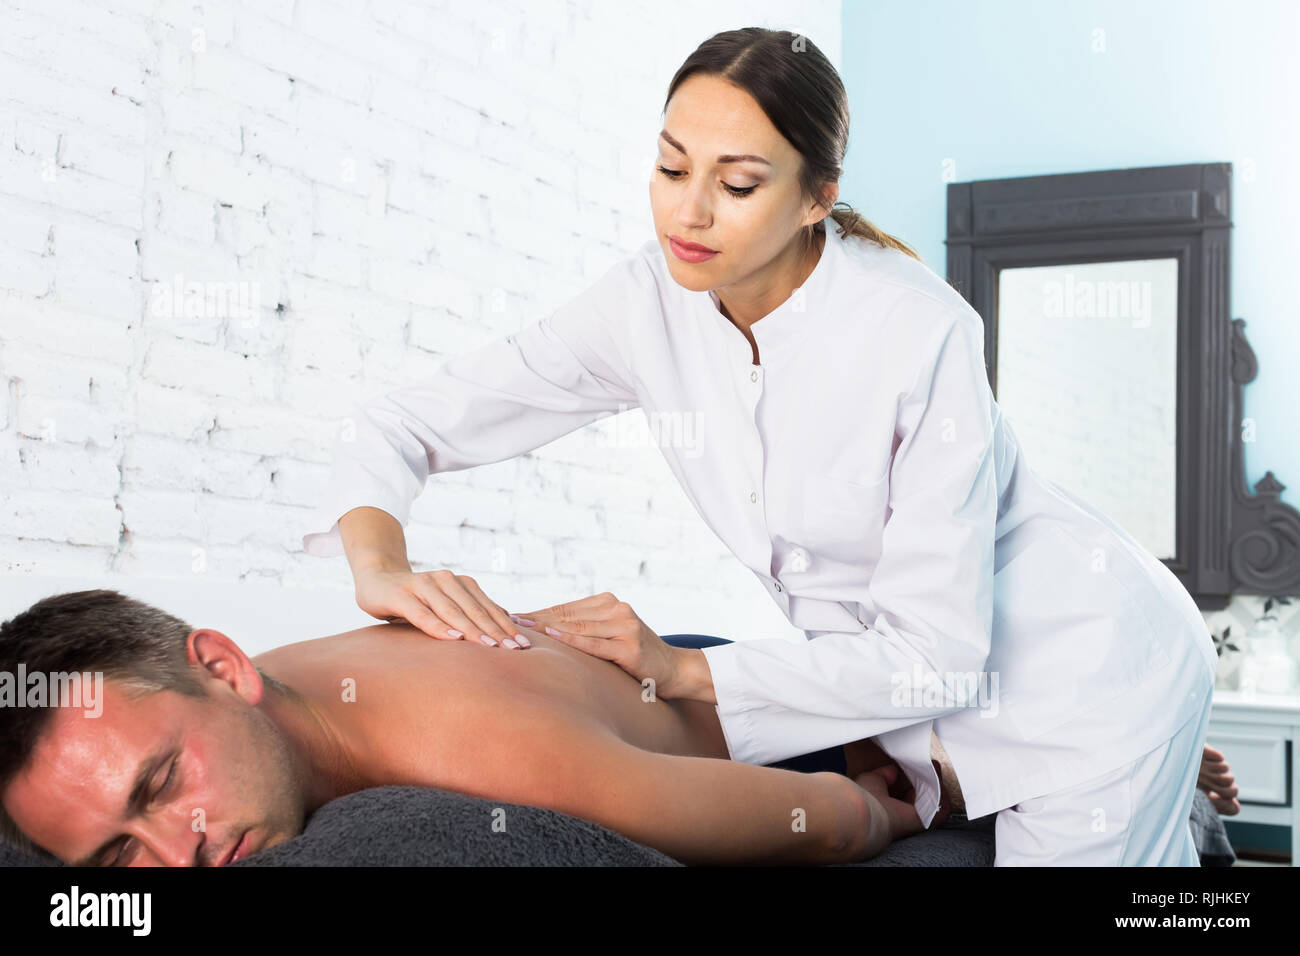 Professional masseuse performing back massage to positive male client in spa center Stock Photo